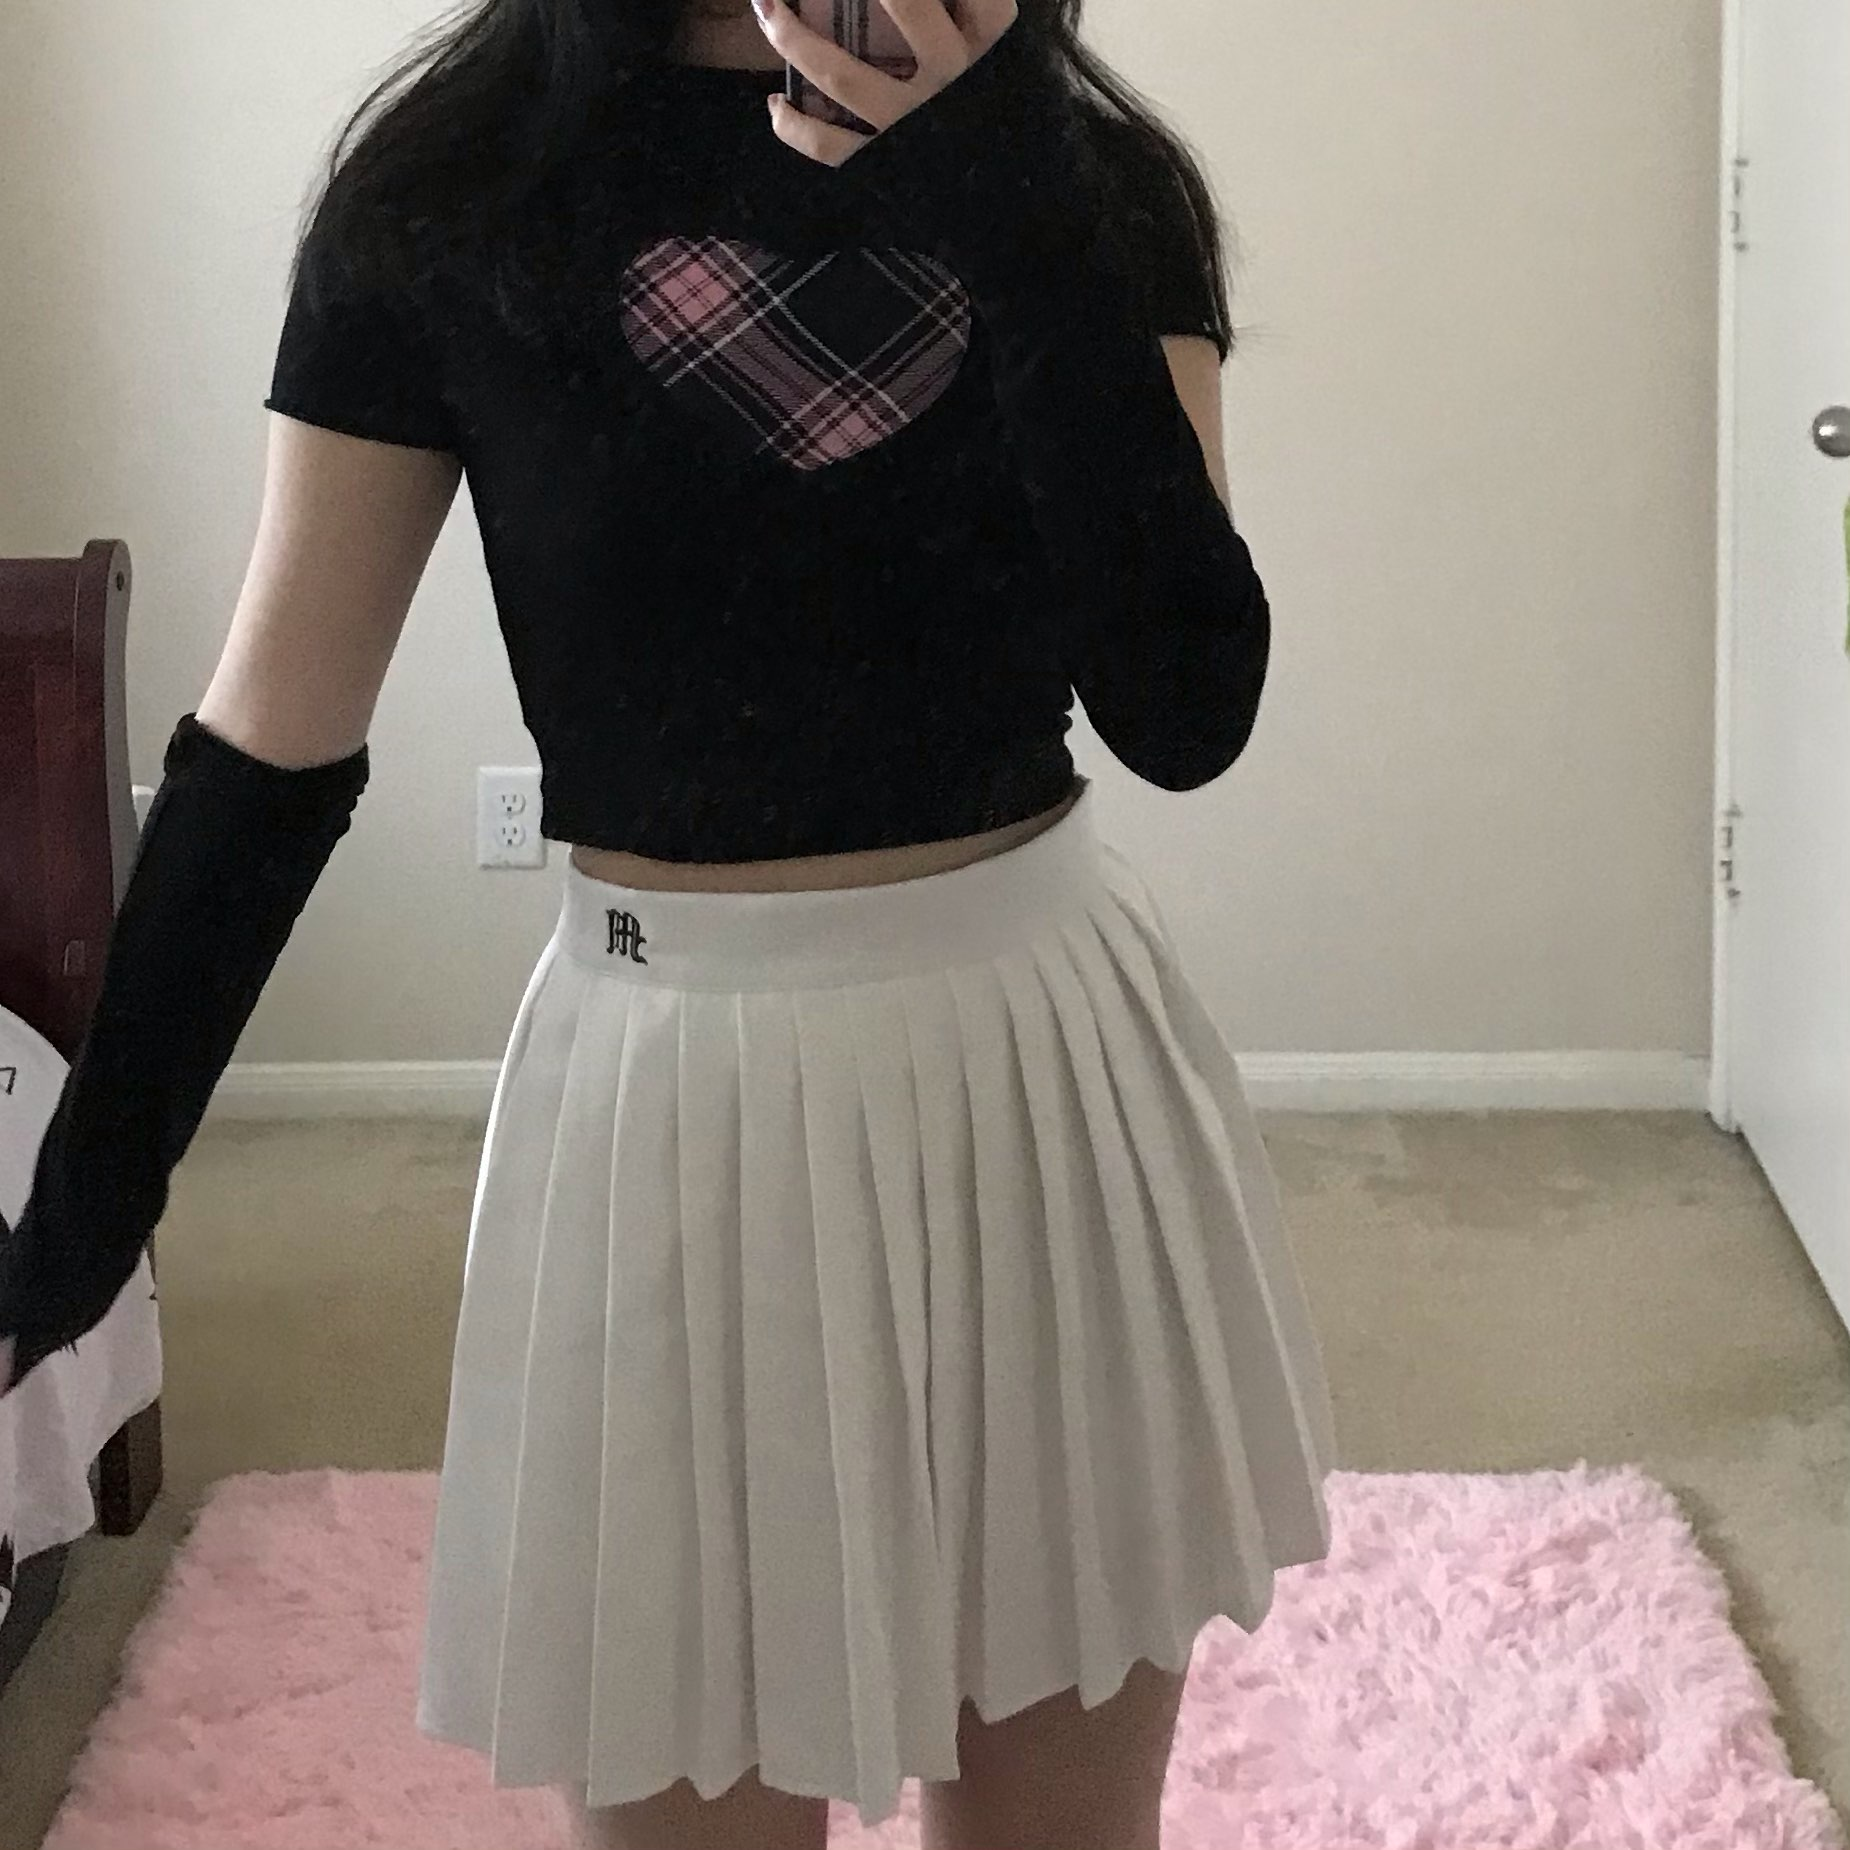 E-girl Gothic Y2K Crop top with Plaid Heart and Ruffles photo review